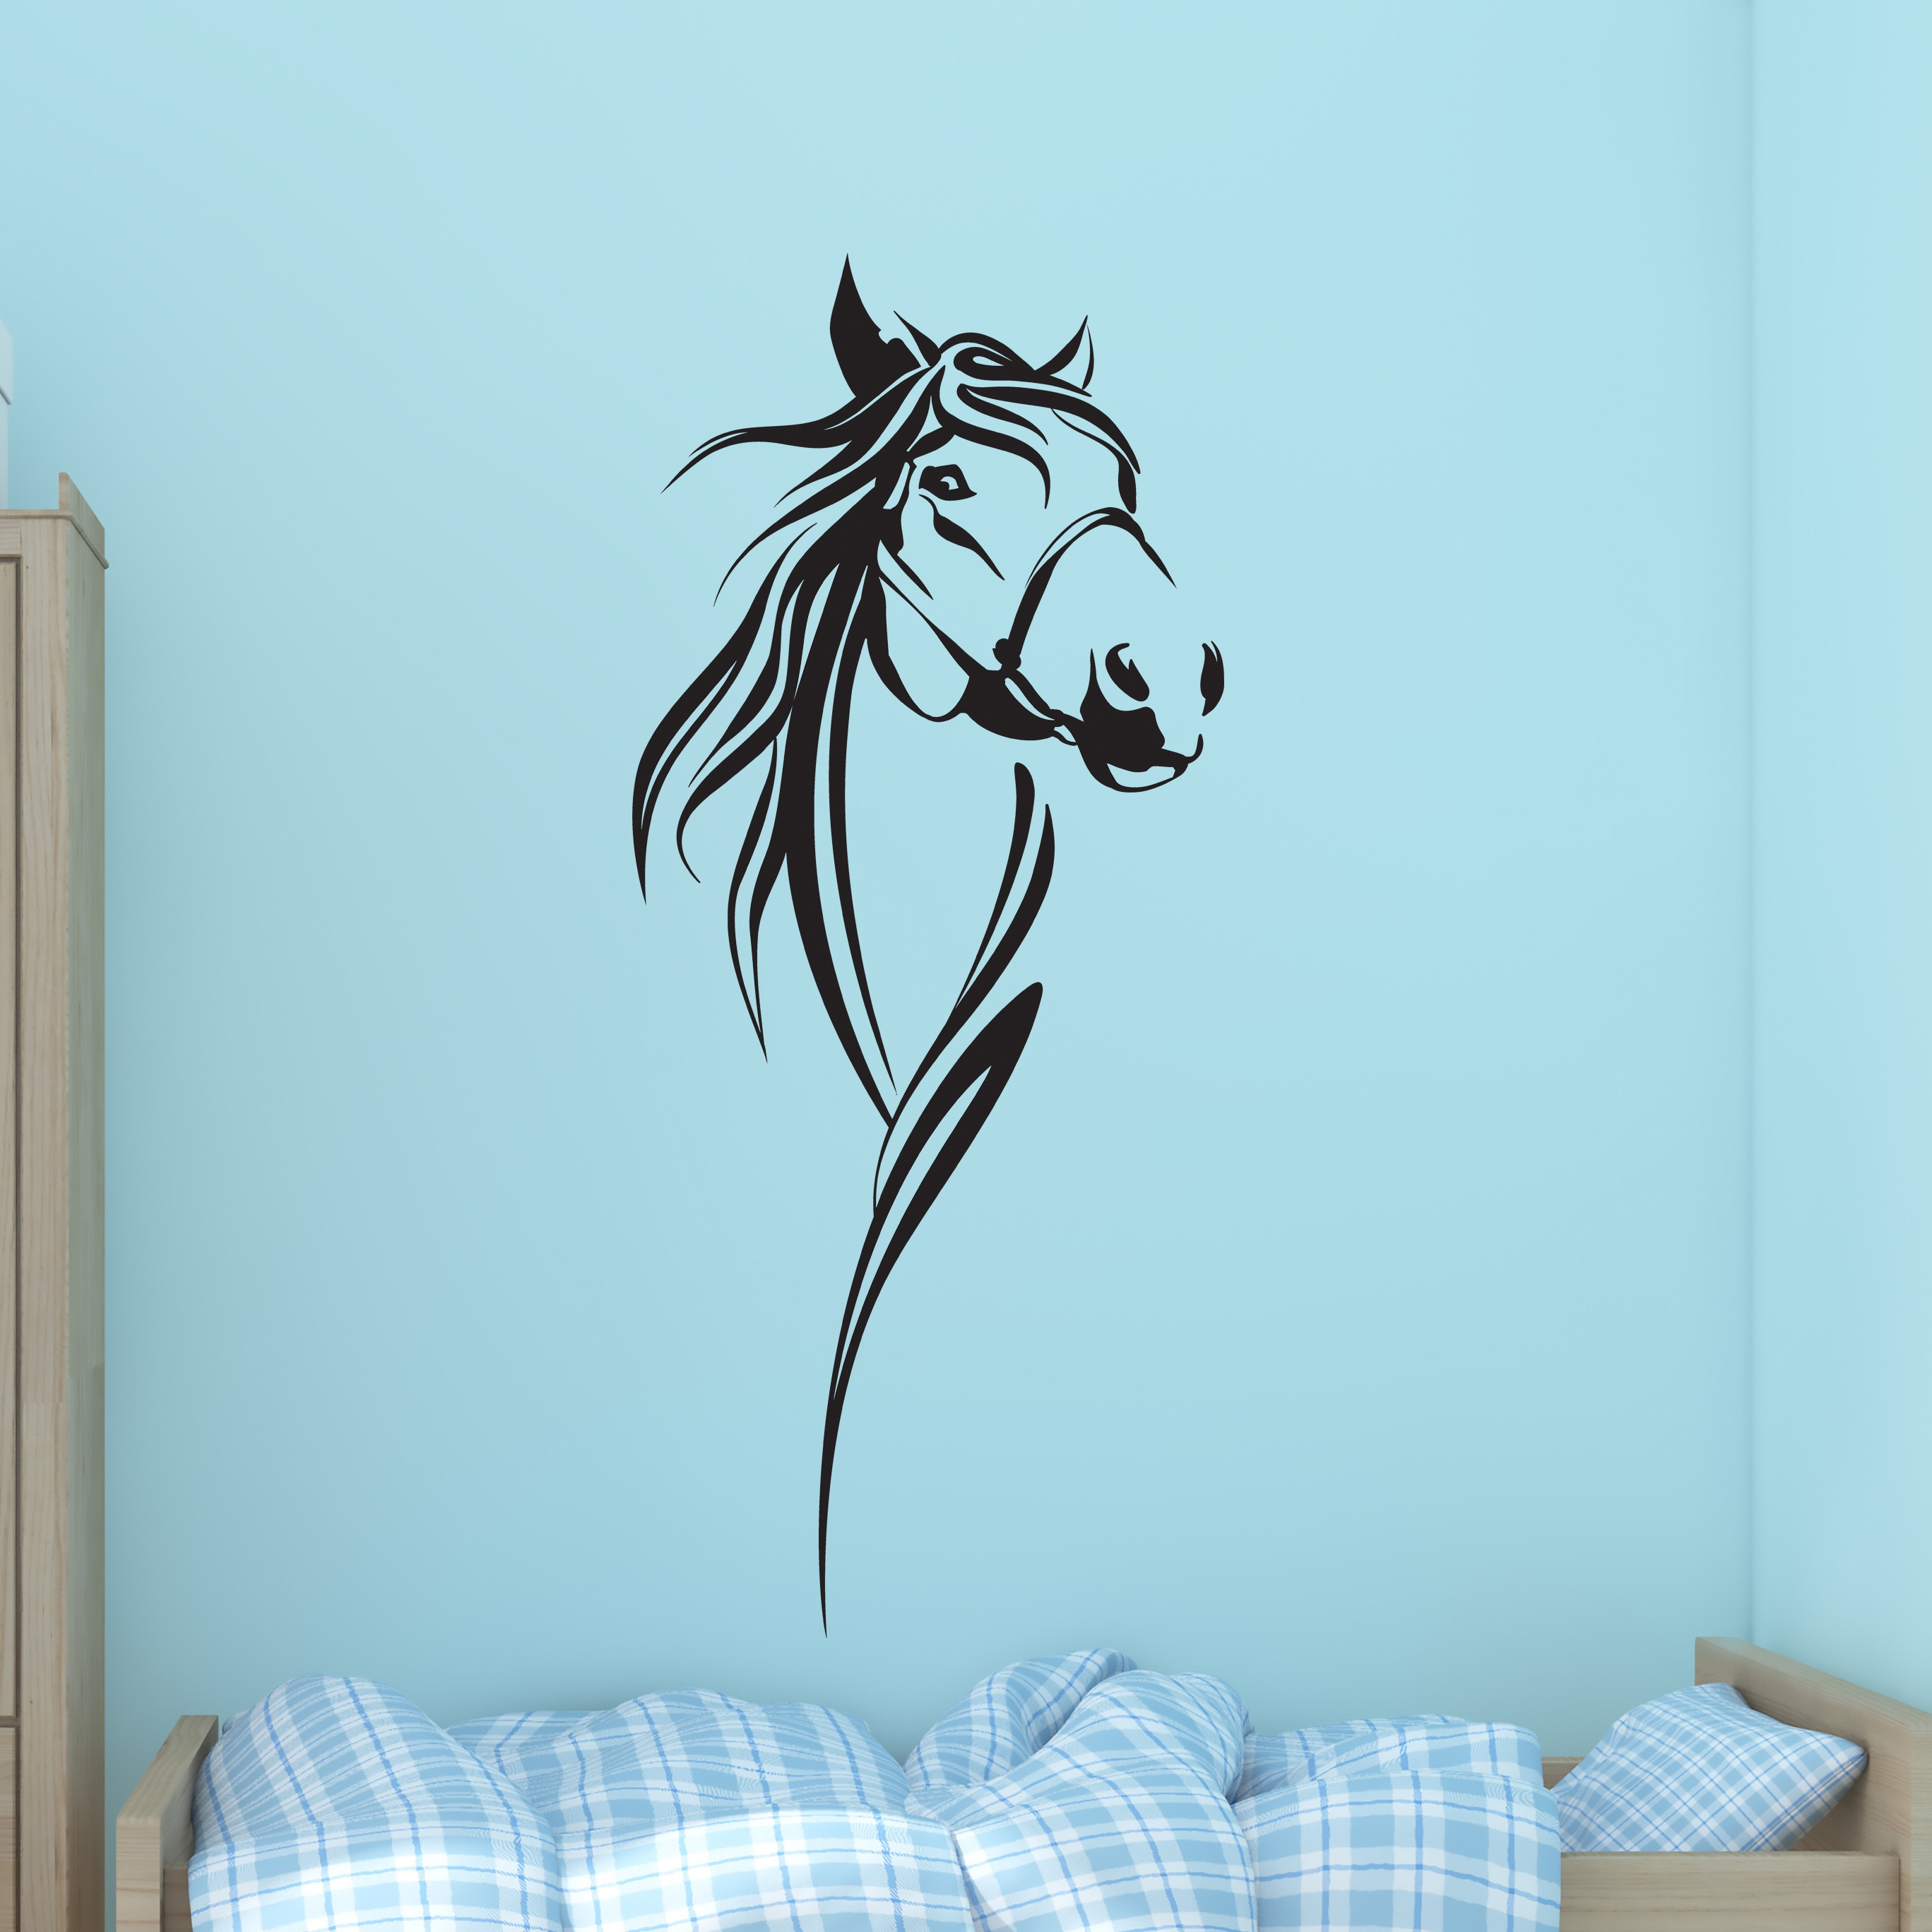 S&A Black Vinyl Horse Wall Decal Sticker (Color)